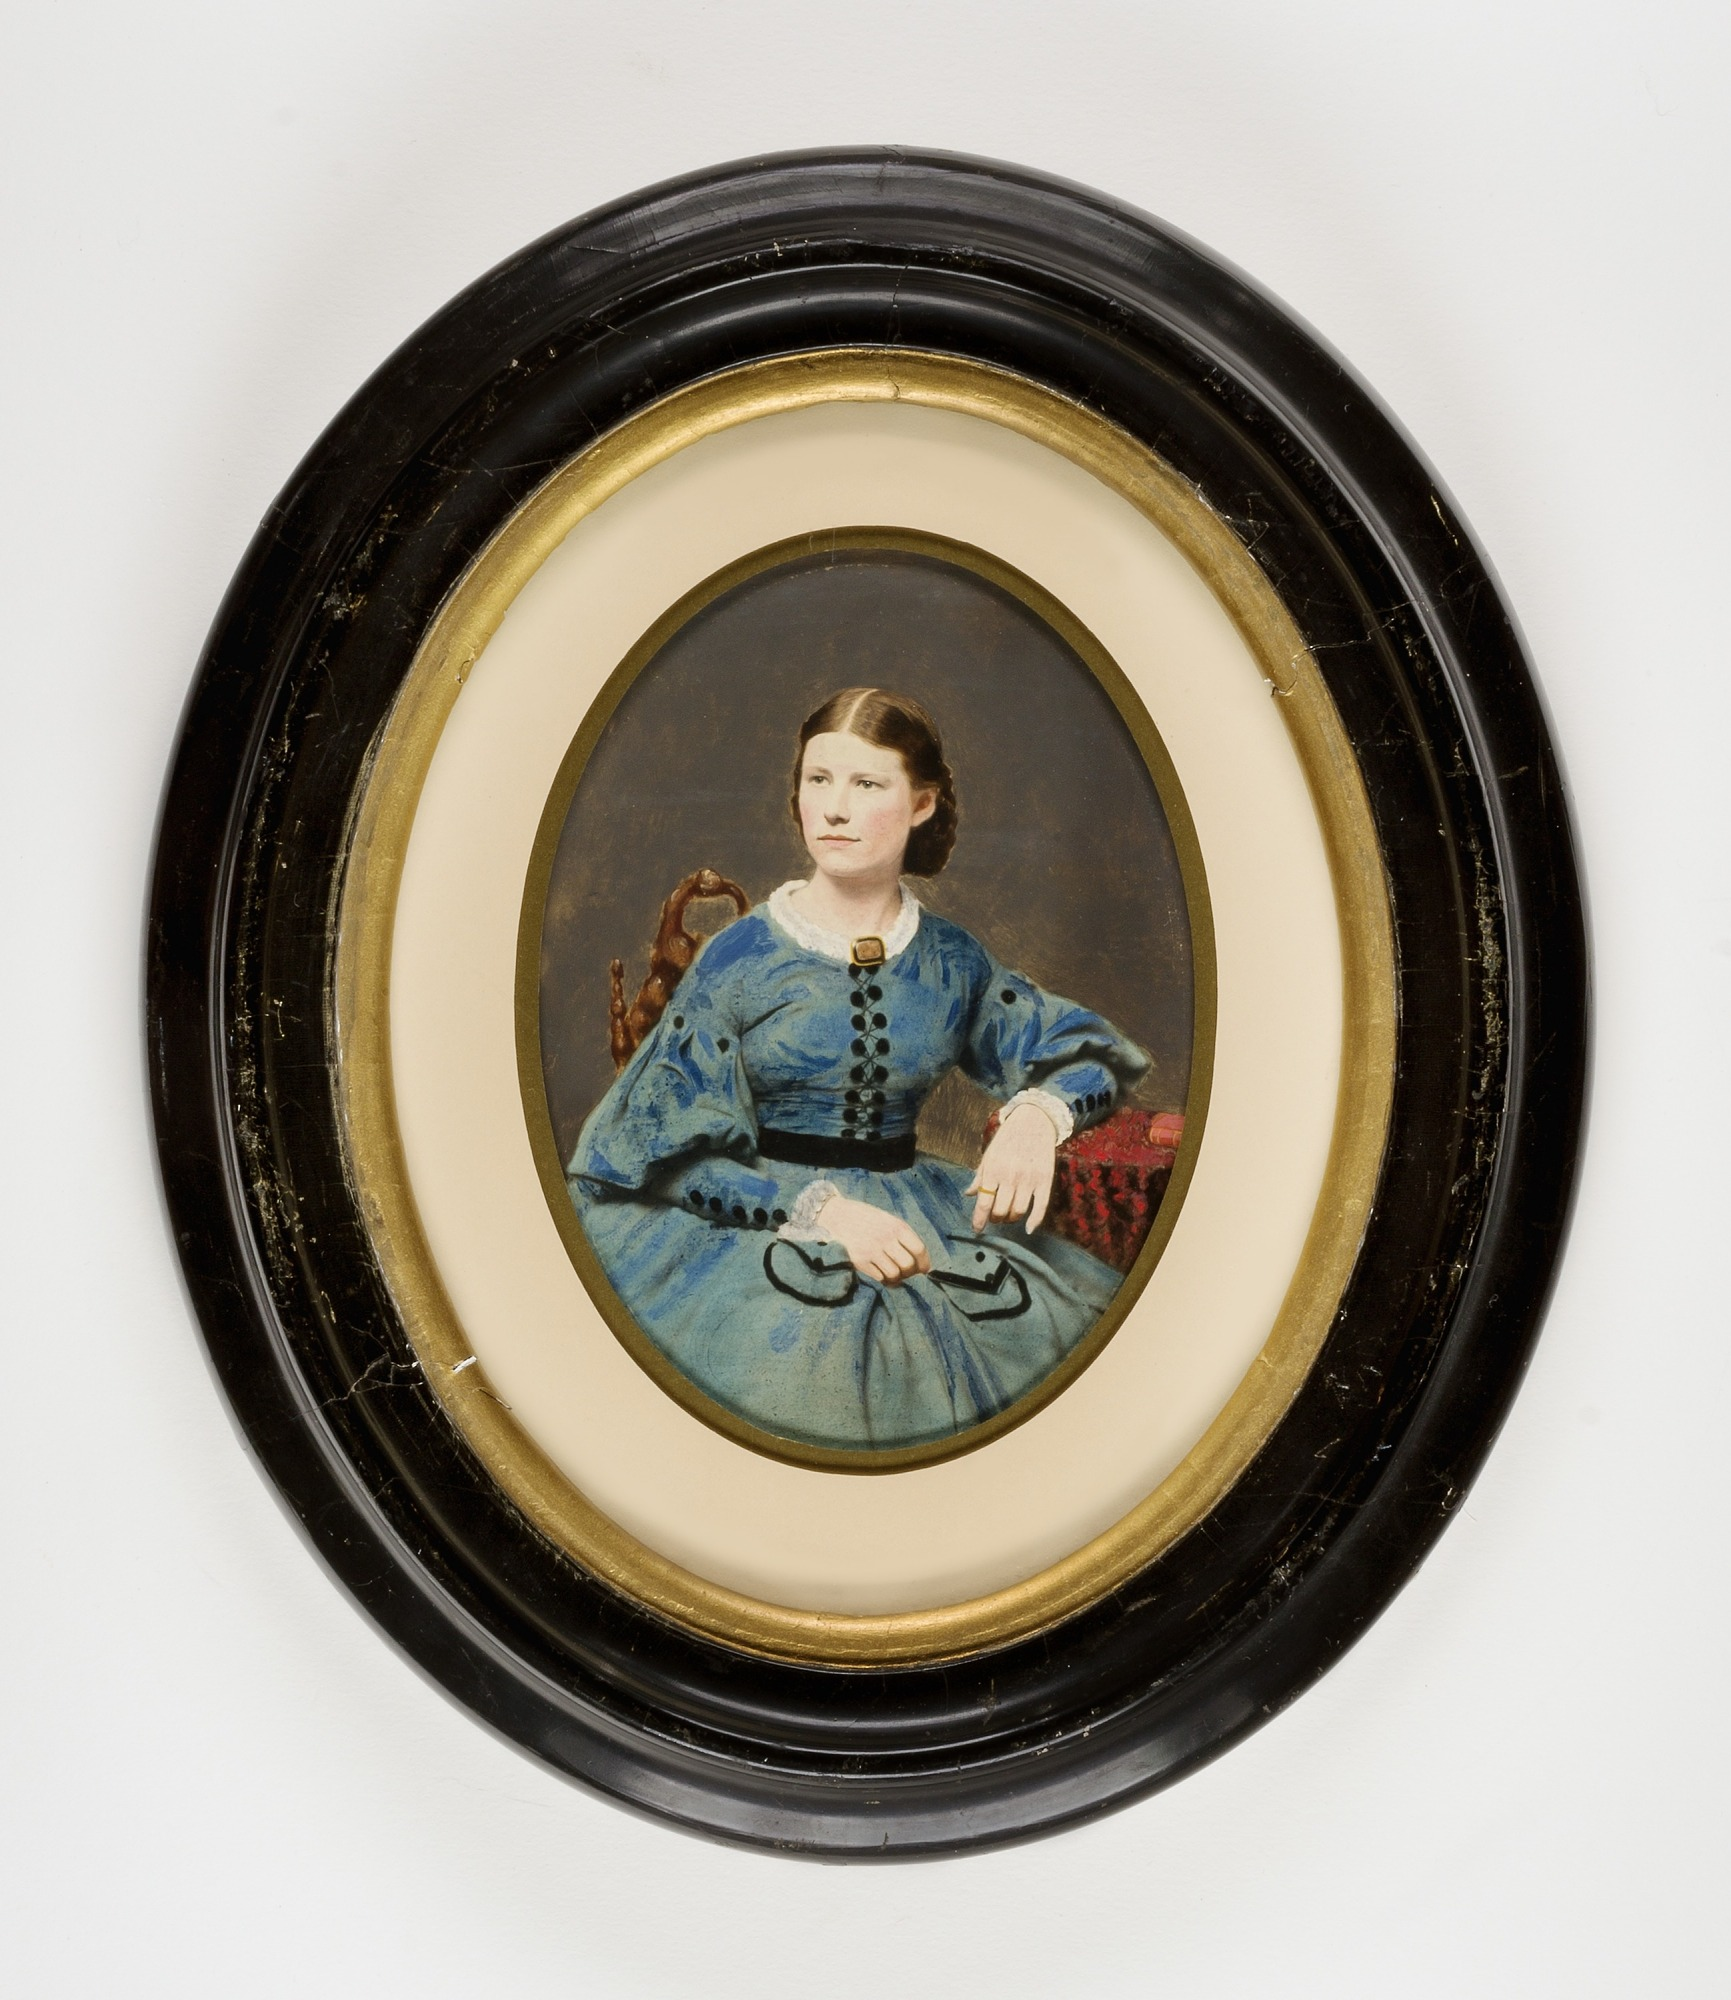 Seated Woman in Blue Dress with Black Trim